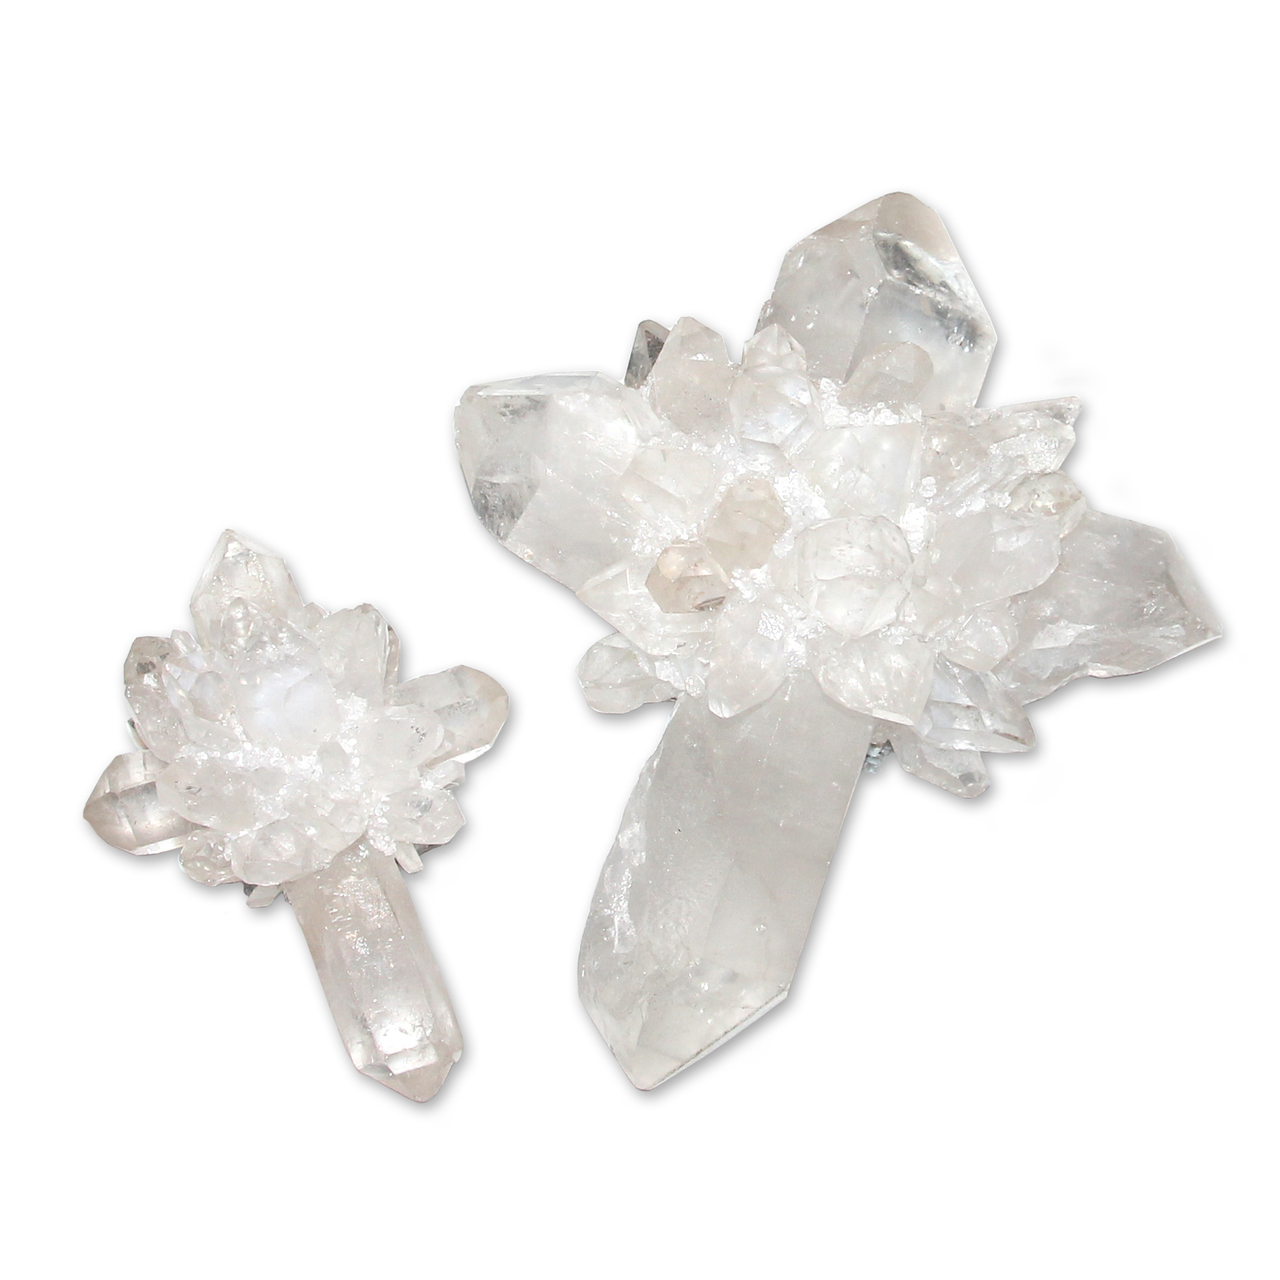 9. White Quartz Cross